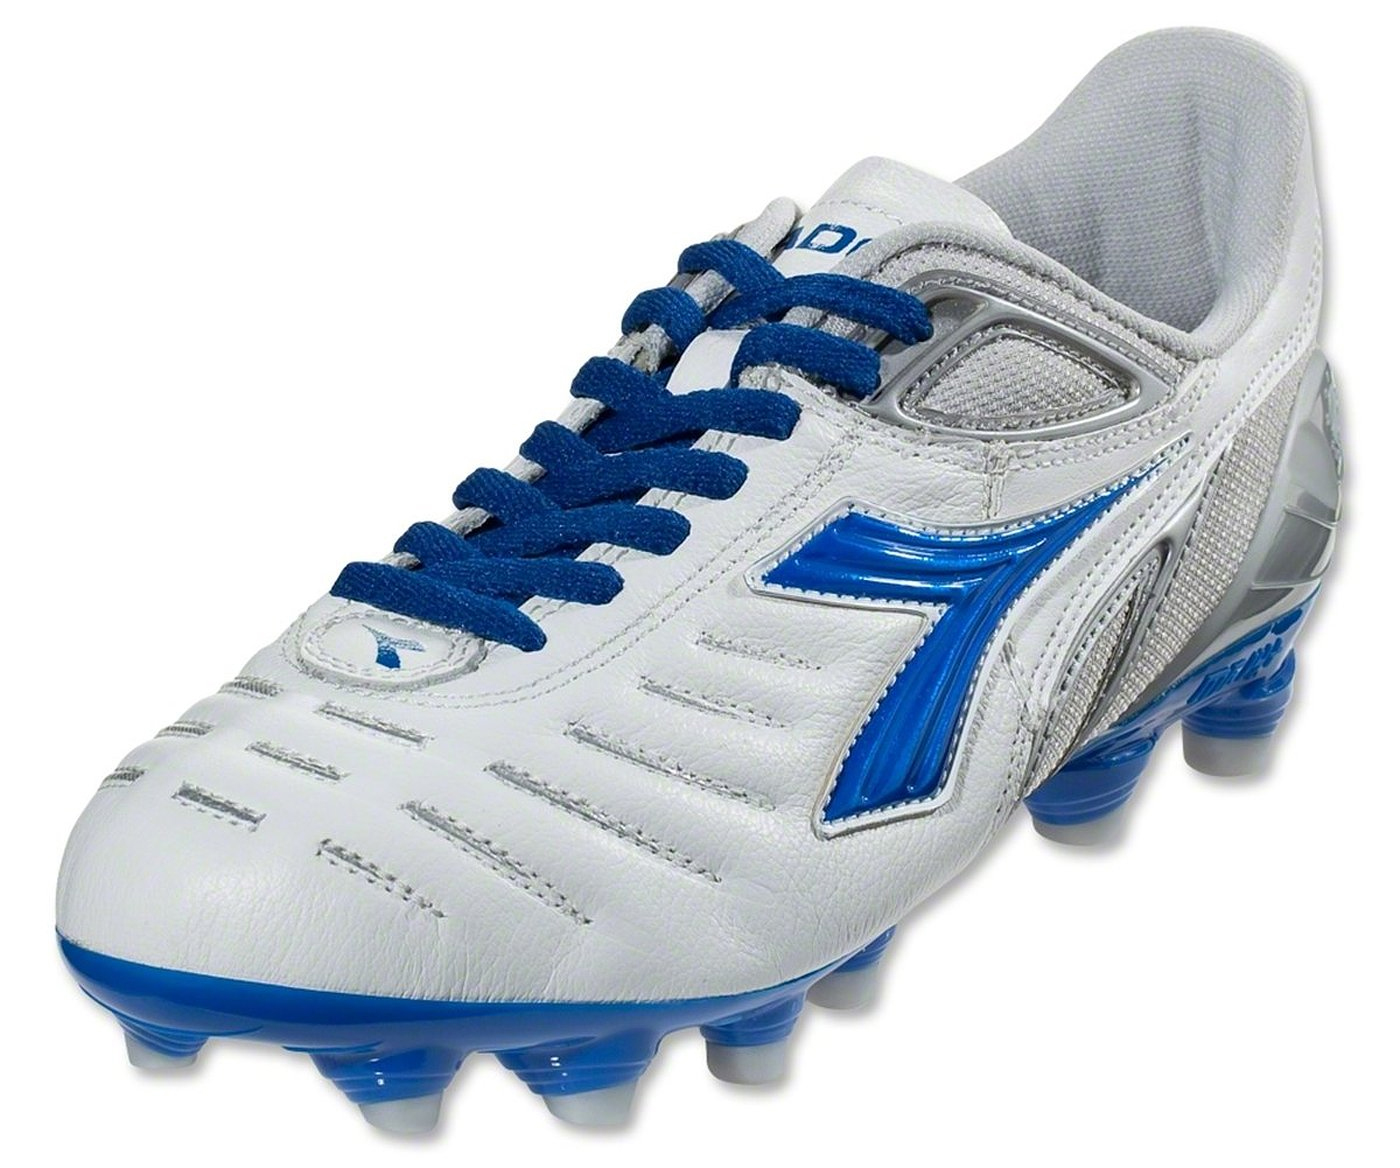 soccer cleat Shop men's, women's and youth's soccer cleats at prices you can afford free  shipping on qualifying orders big 5 sporting goods gets you ready to play.